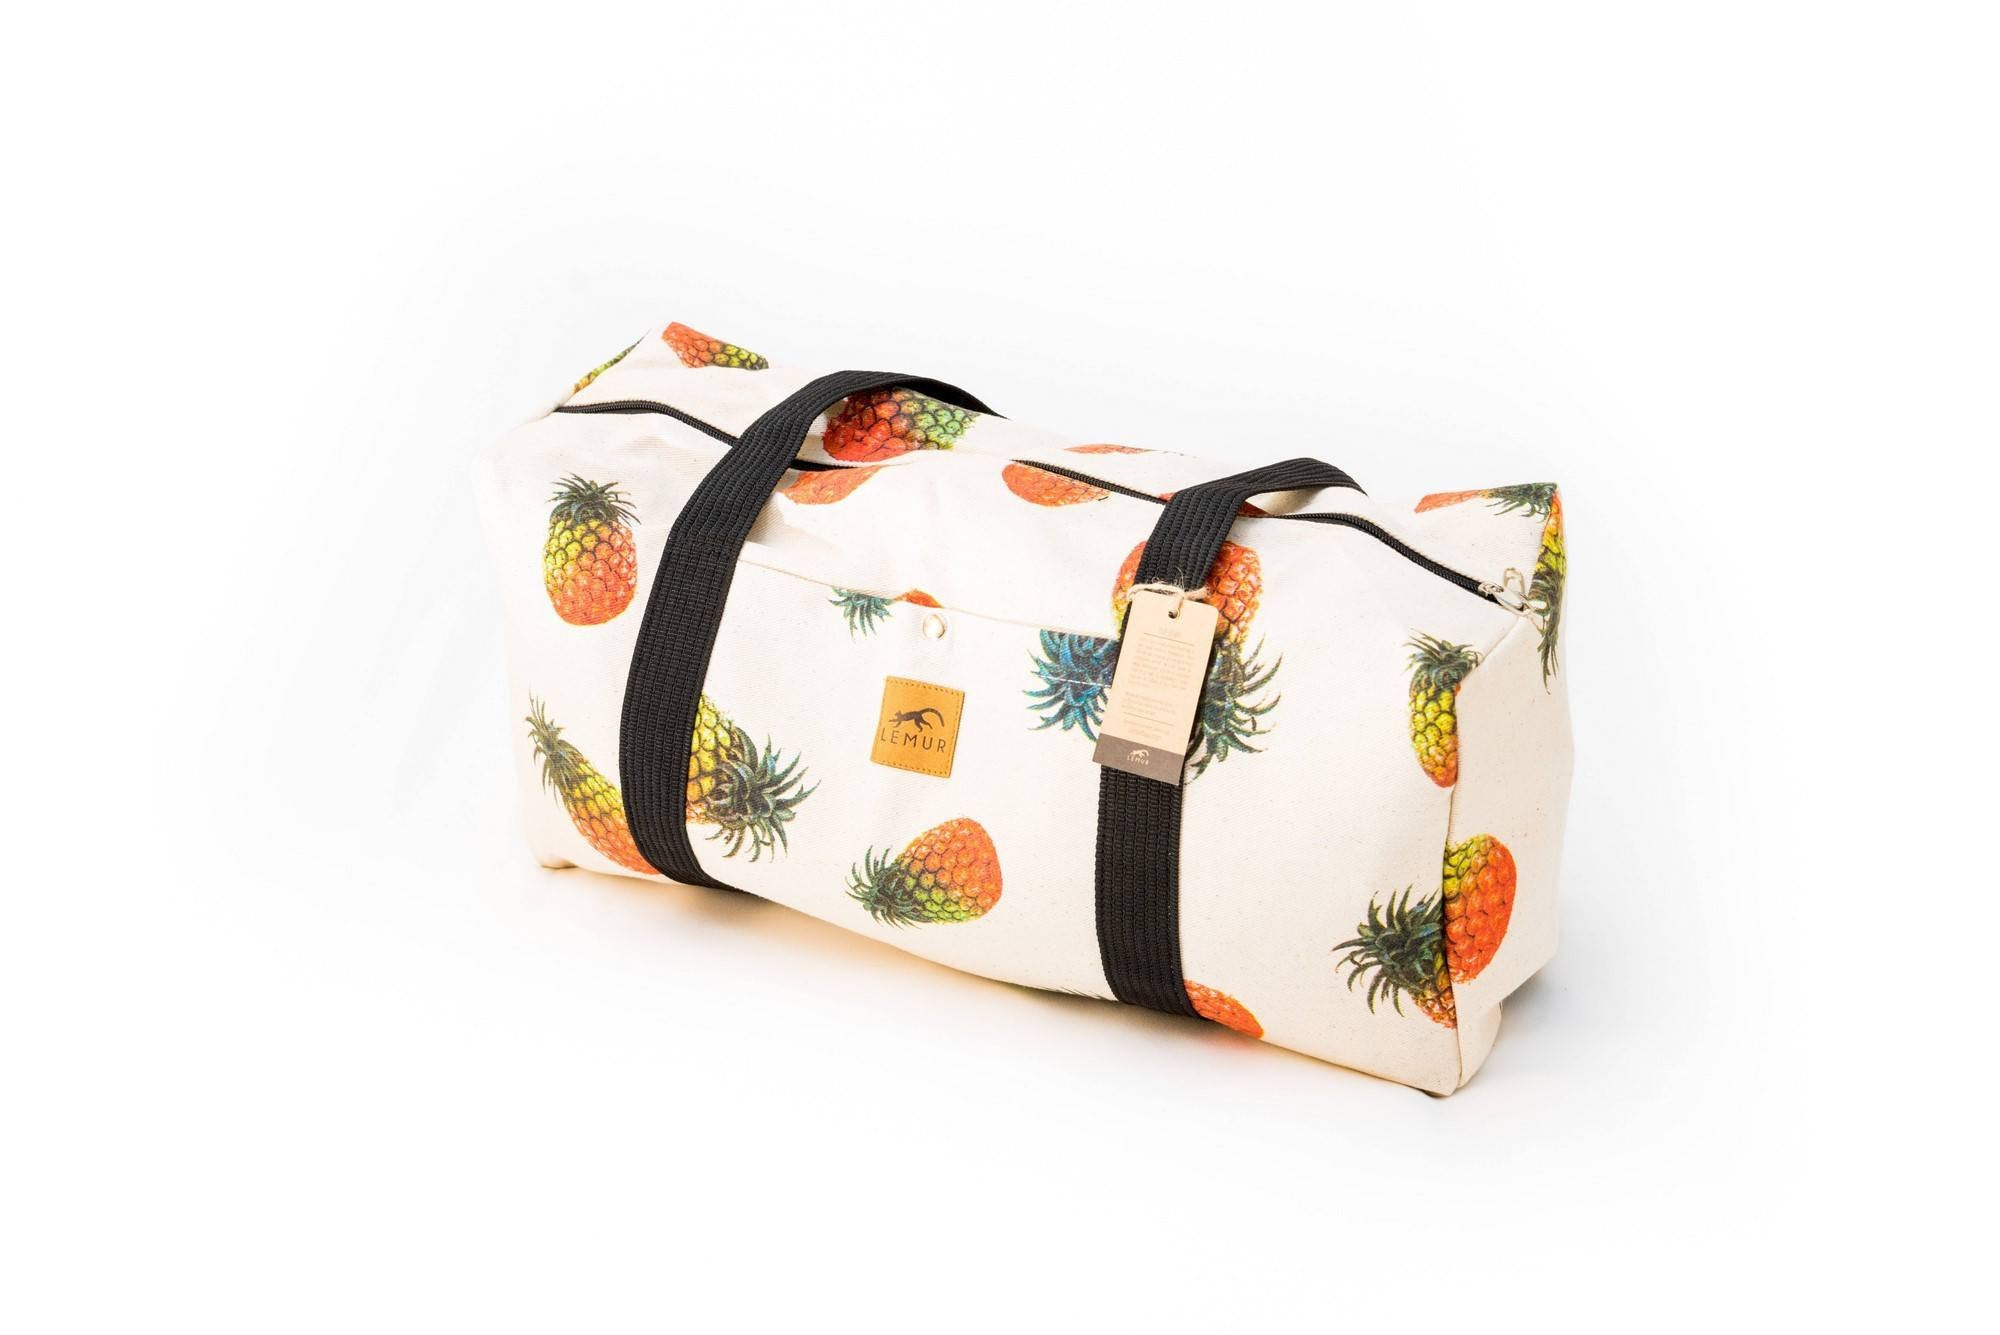 Canvas Duffel Bag - Canvas Duffel Bag - Gym Or Sports Bag, Carry-On Travel Luggage By Lemur Bags (Pineapples)